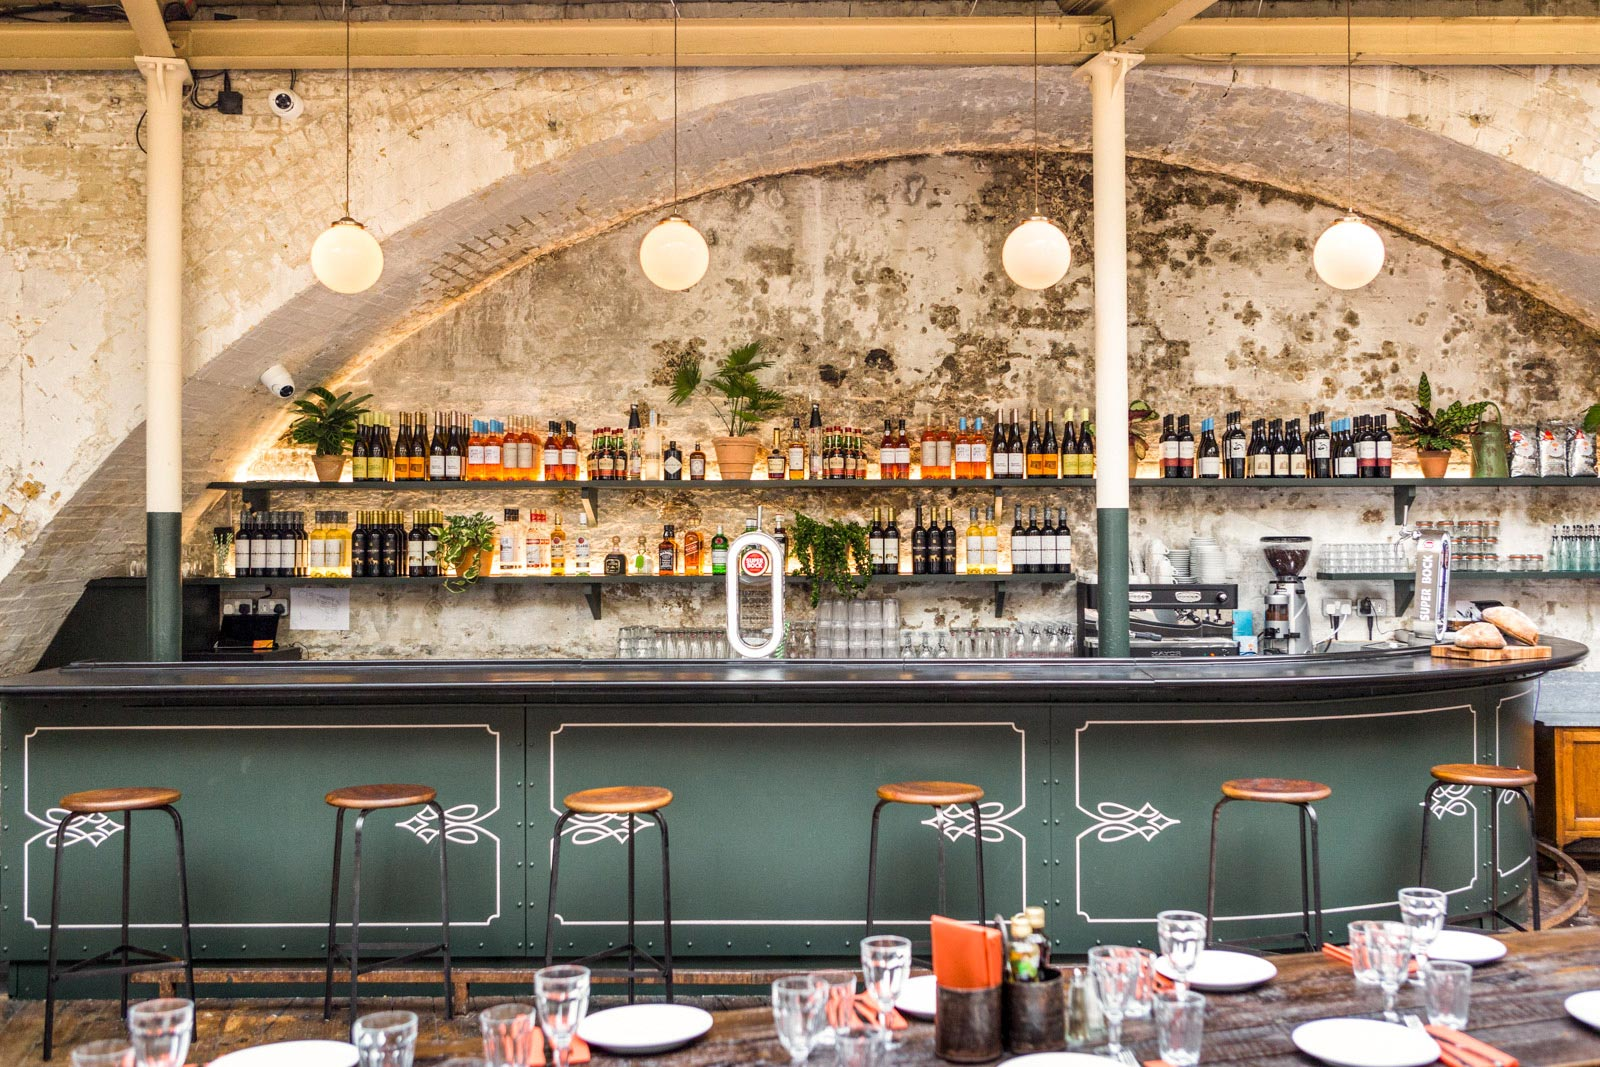 Globe Pendant Lights in this Rustic Portuguese Restaurant in London